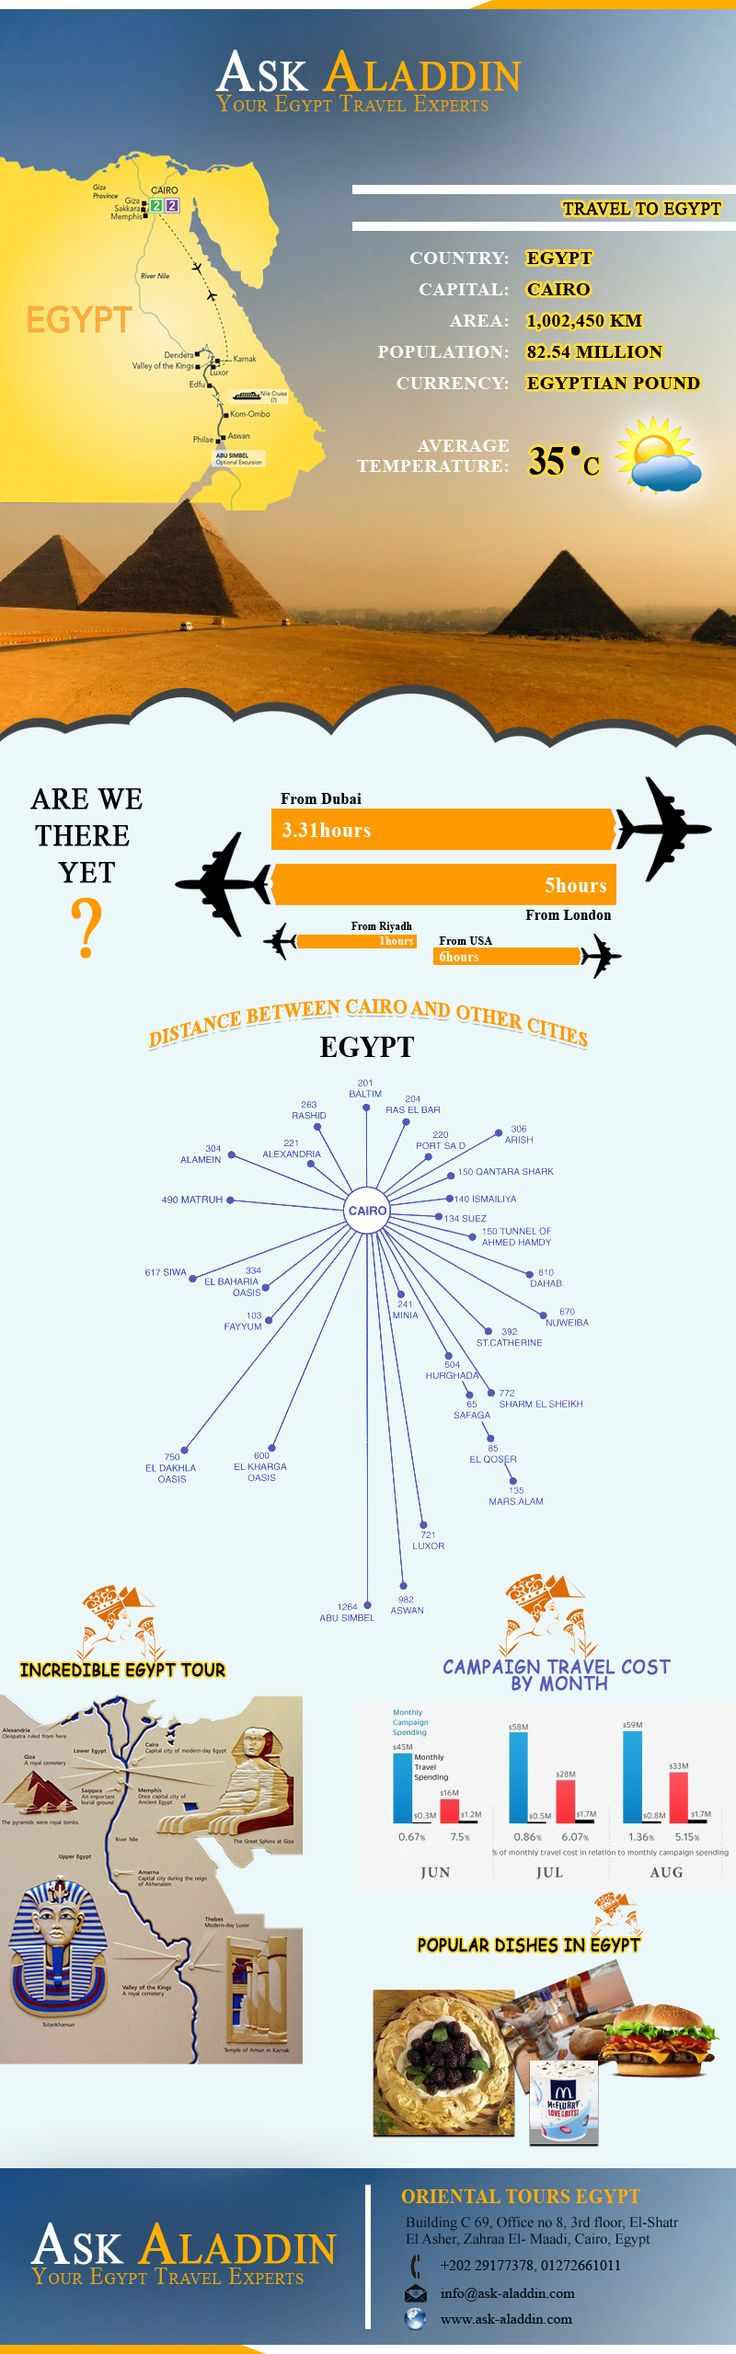 Egypt Travel Guide PDF - Egypt Vacation Ideas